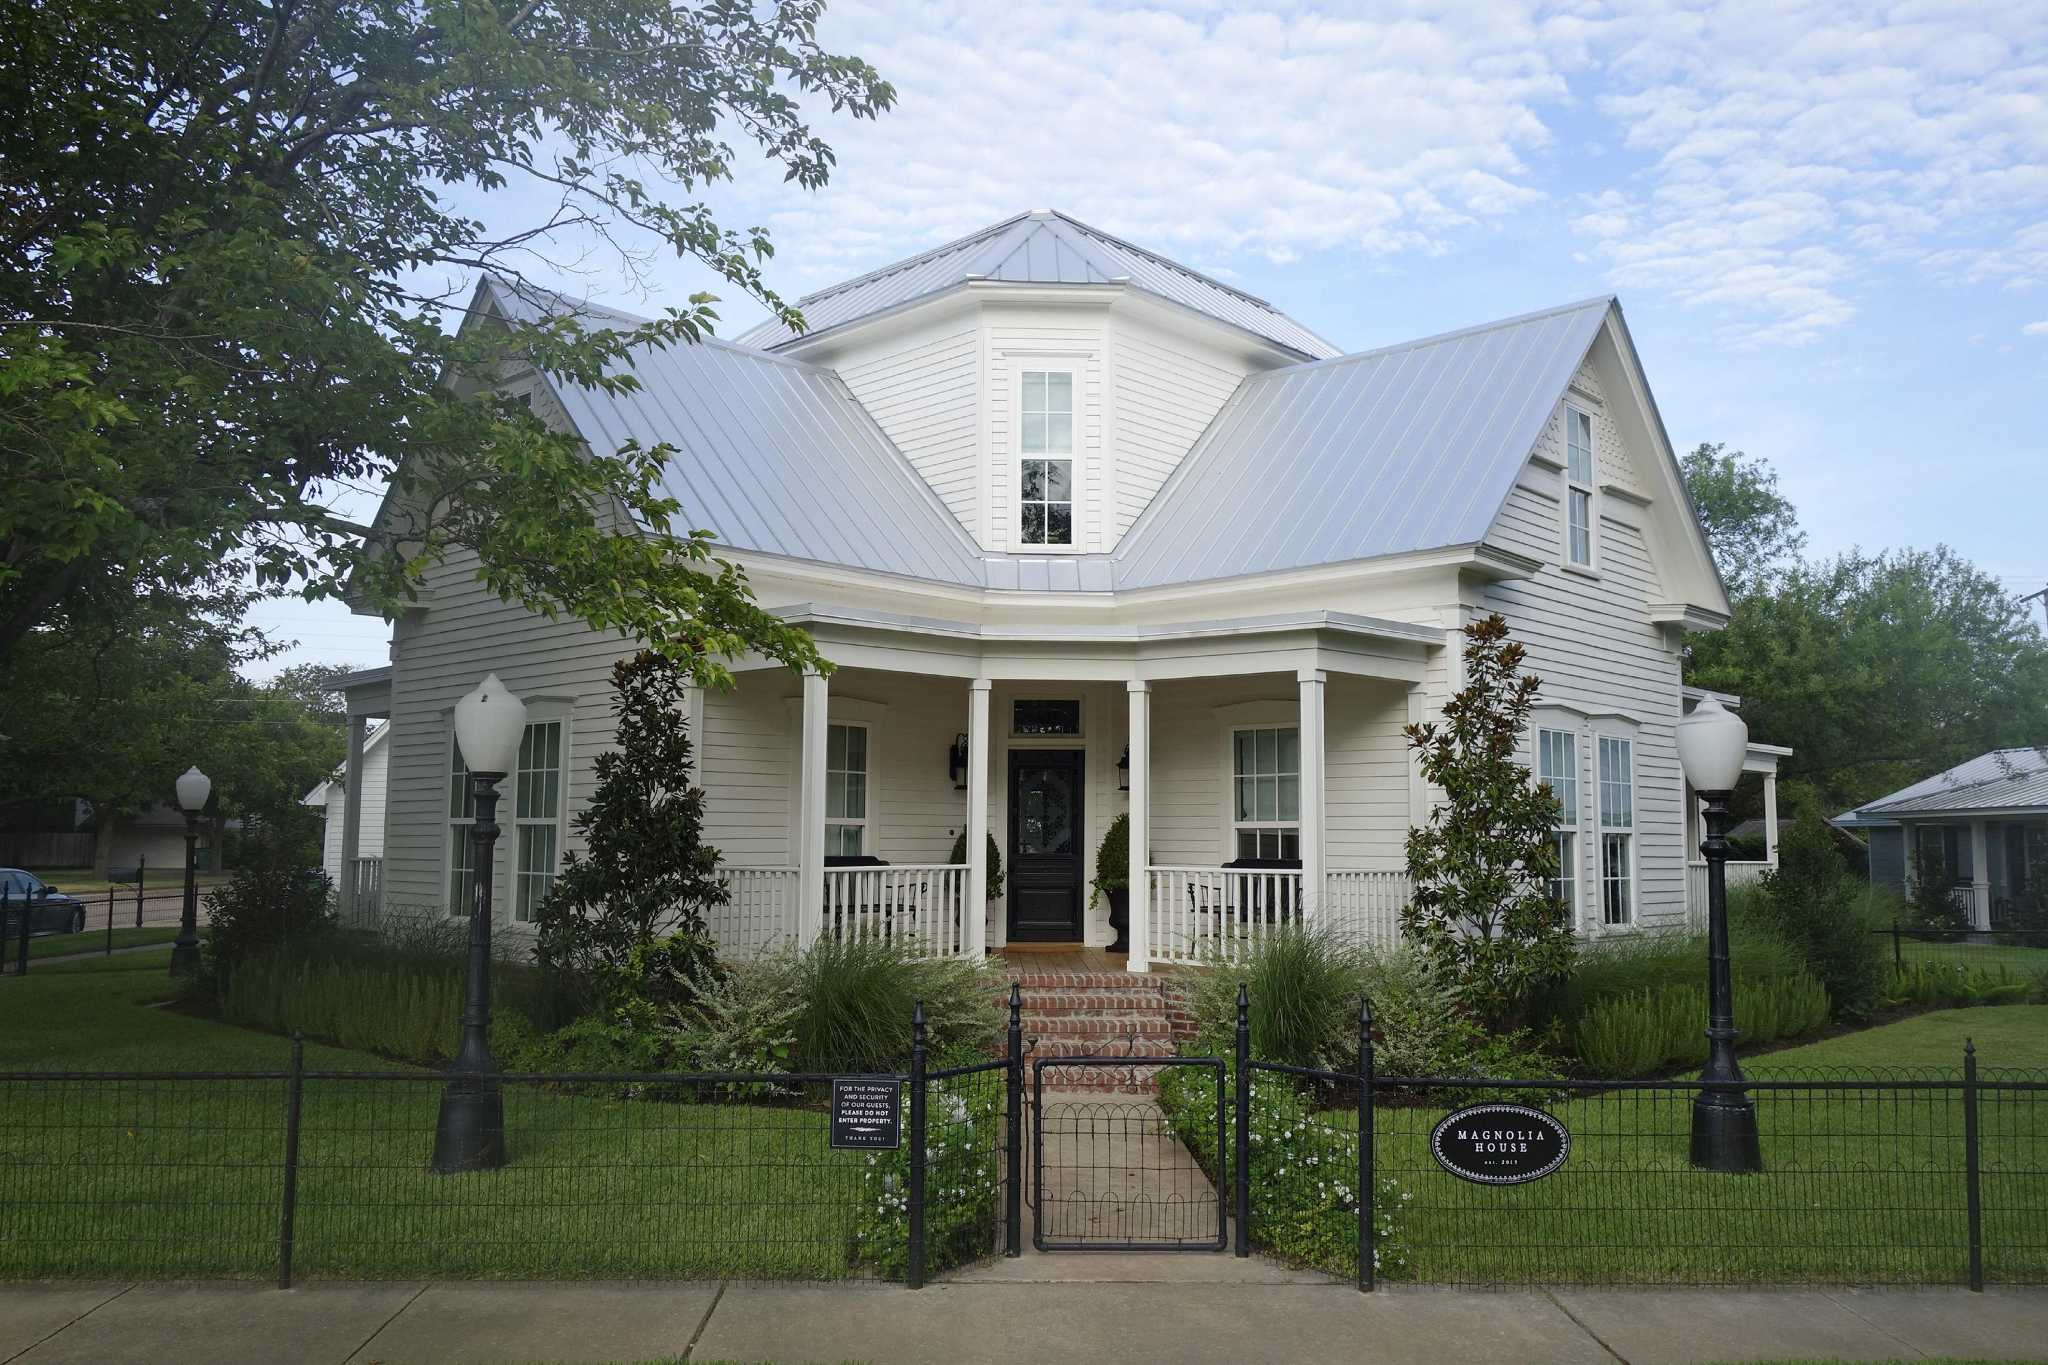 Magnolia House is reflection of fixer upper style by Joanna and